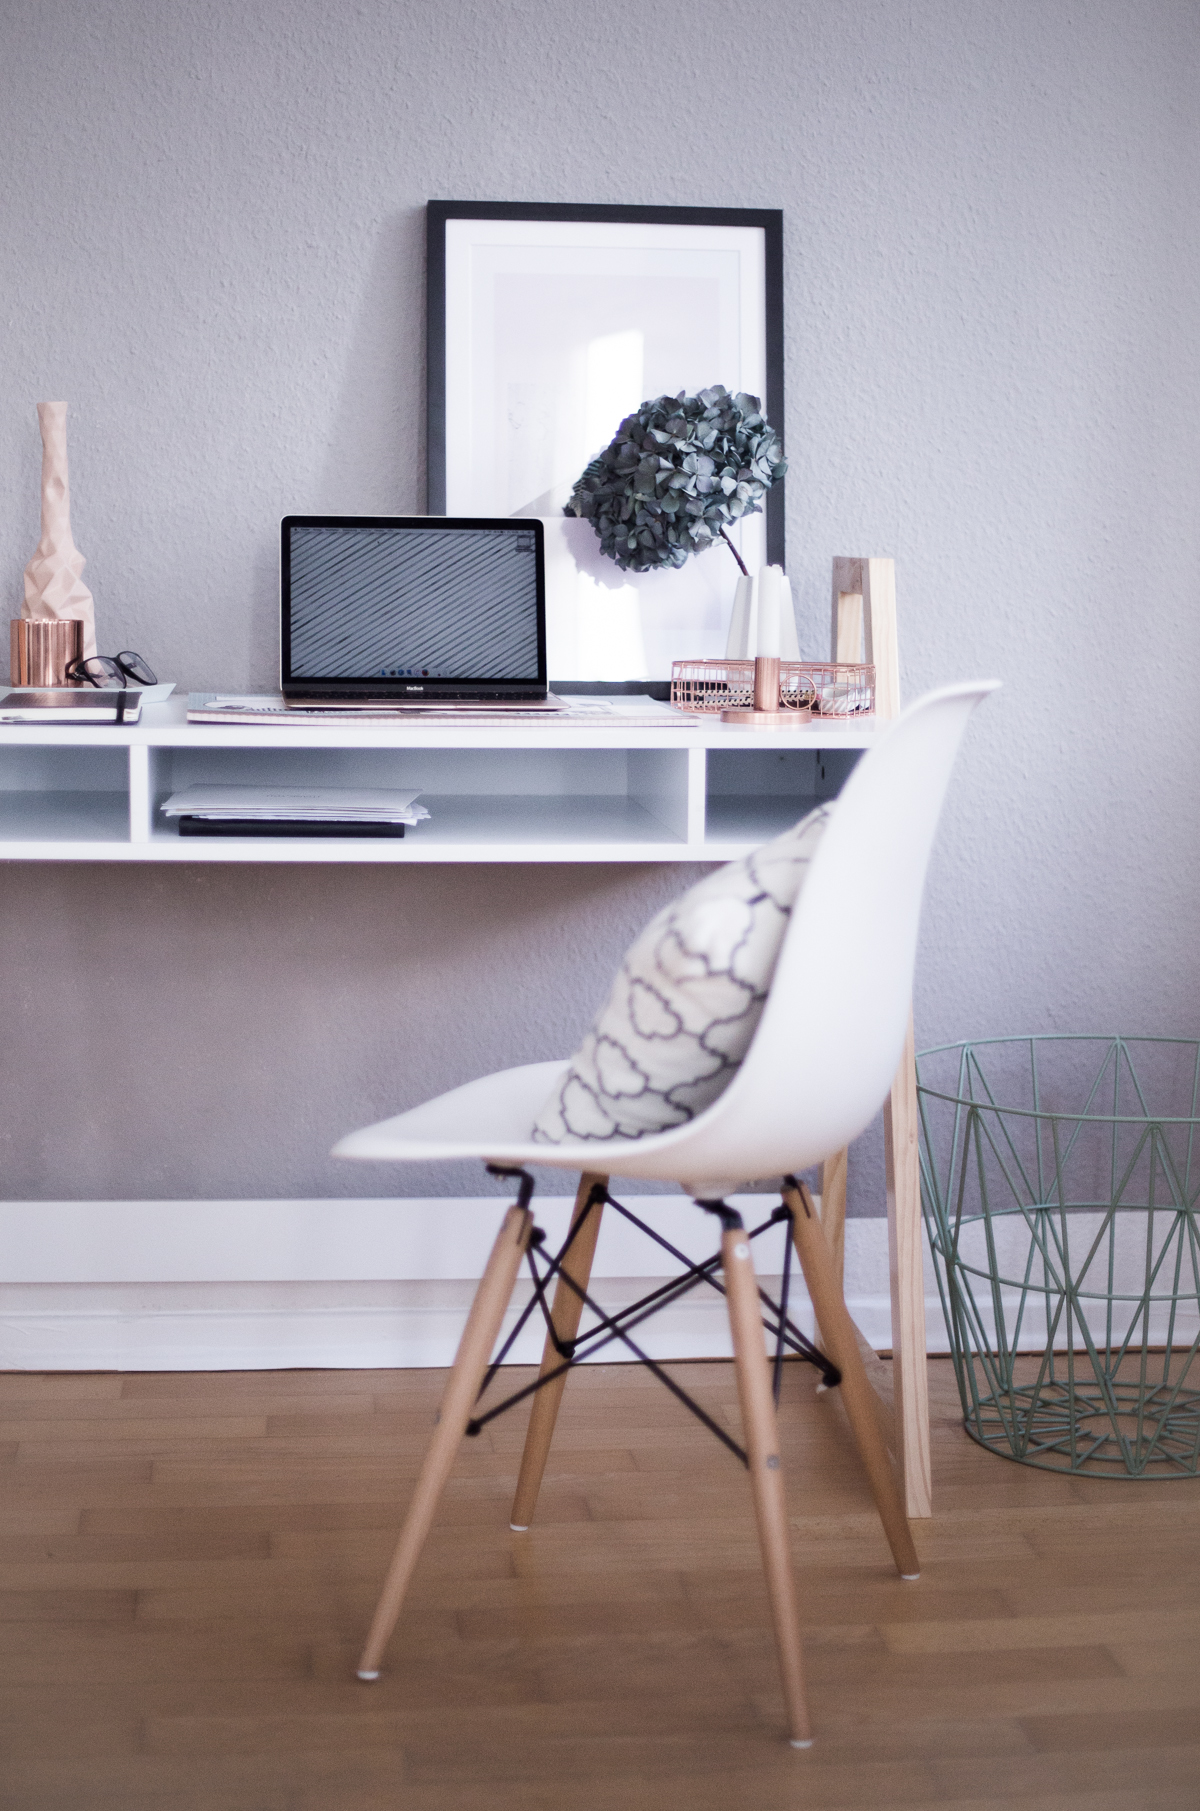 Video: How to create a stylish Home Office